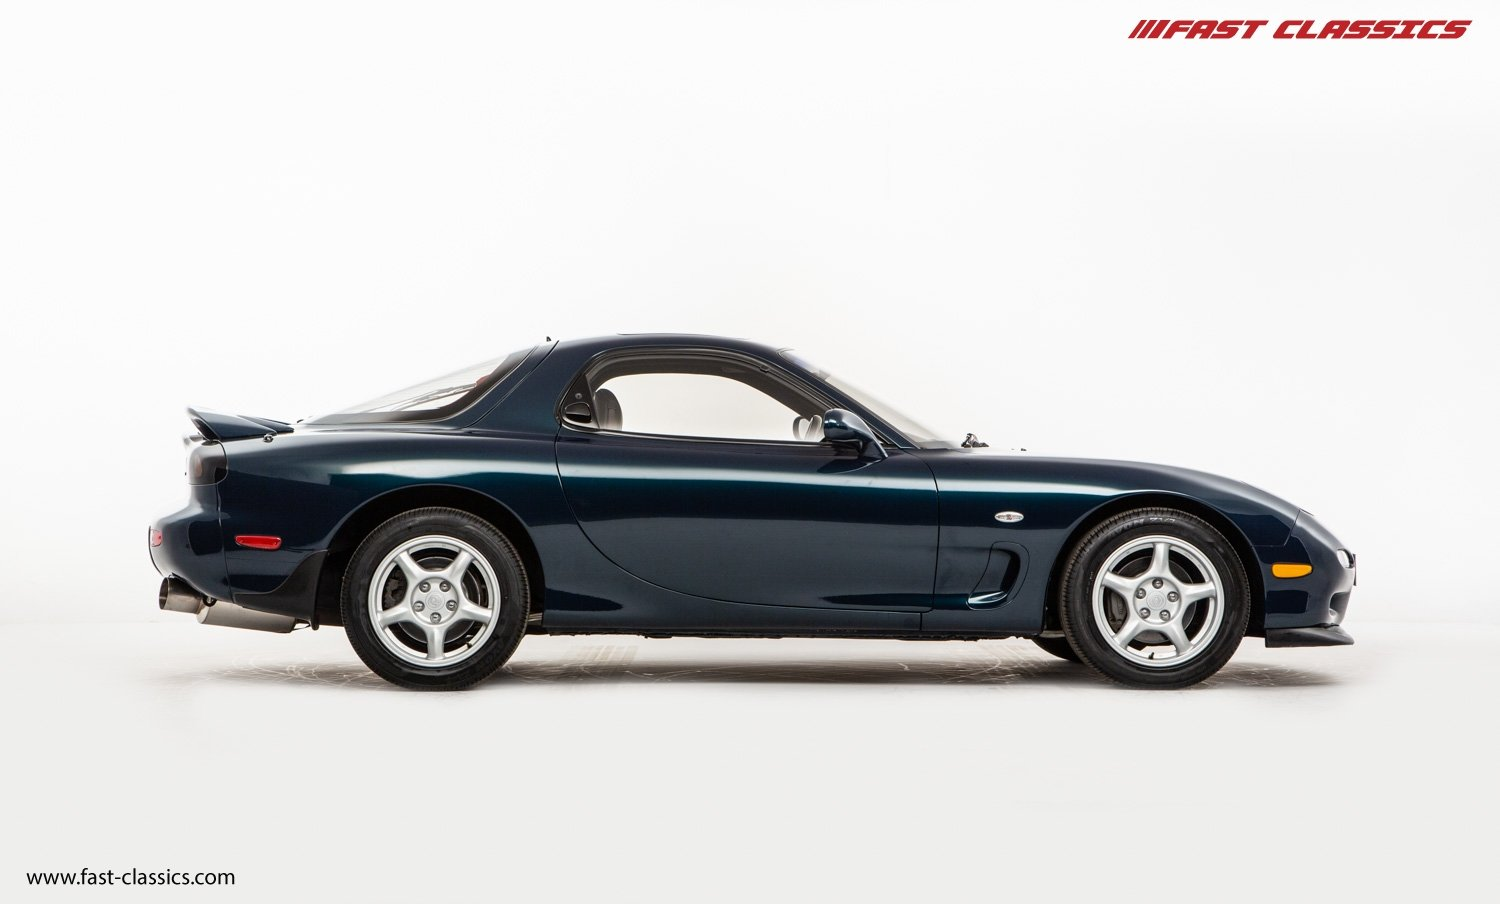 1993 MAZDA RX-7 FD // FAMILY OWNED // 26K MILES // 1 OF 210 UK DE For Sale (picture 1 of 23)